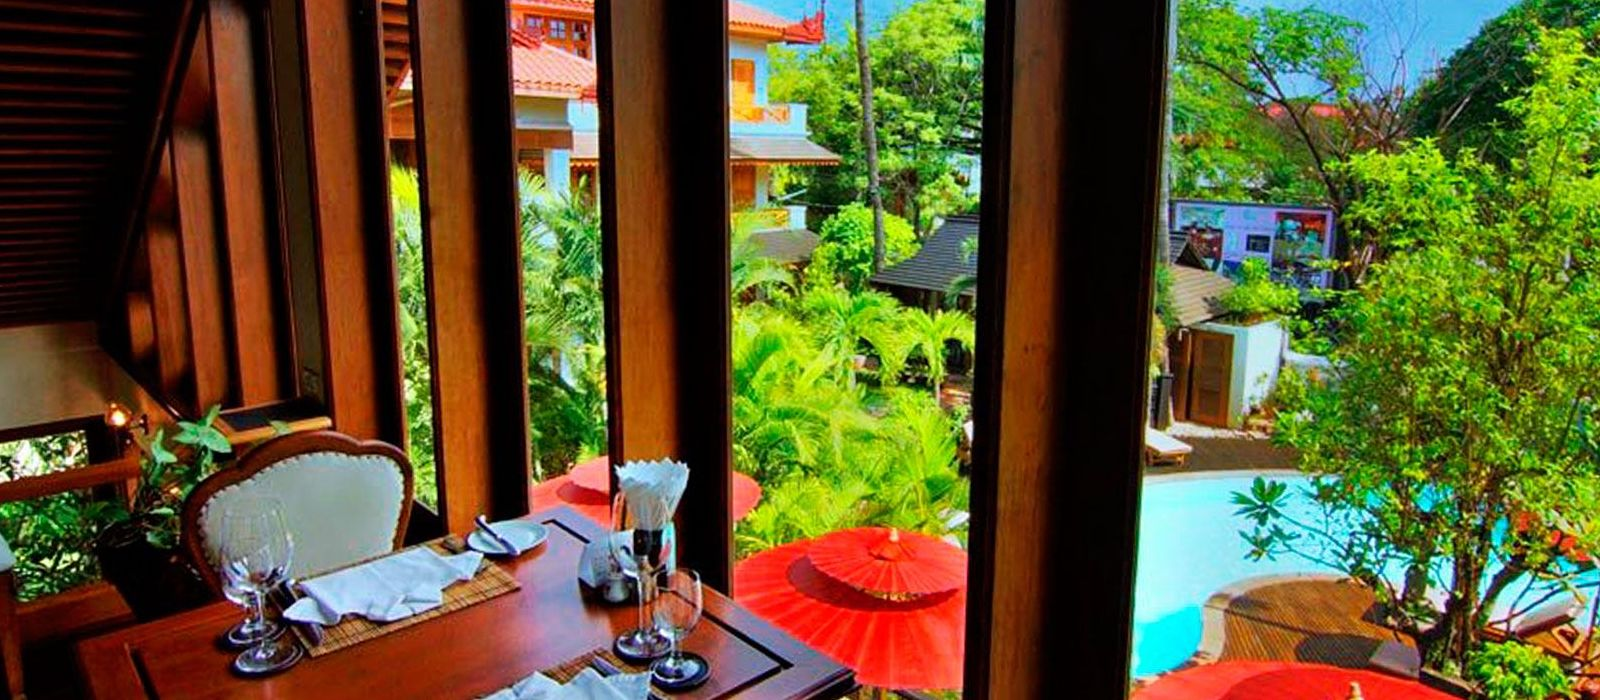 Hotel  by the Red Canal (Mandalay) Myanmar